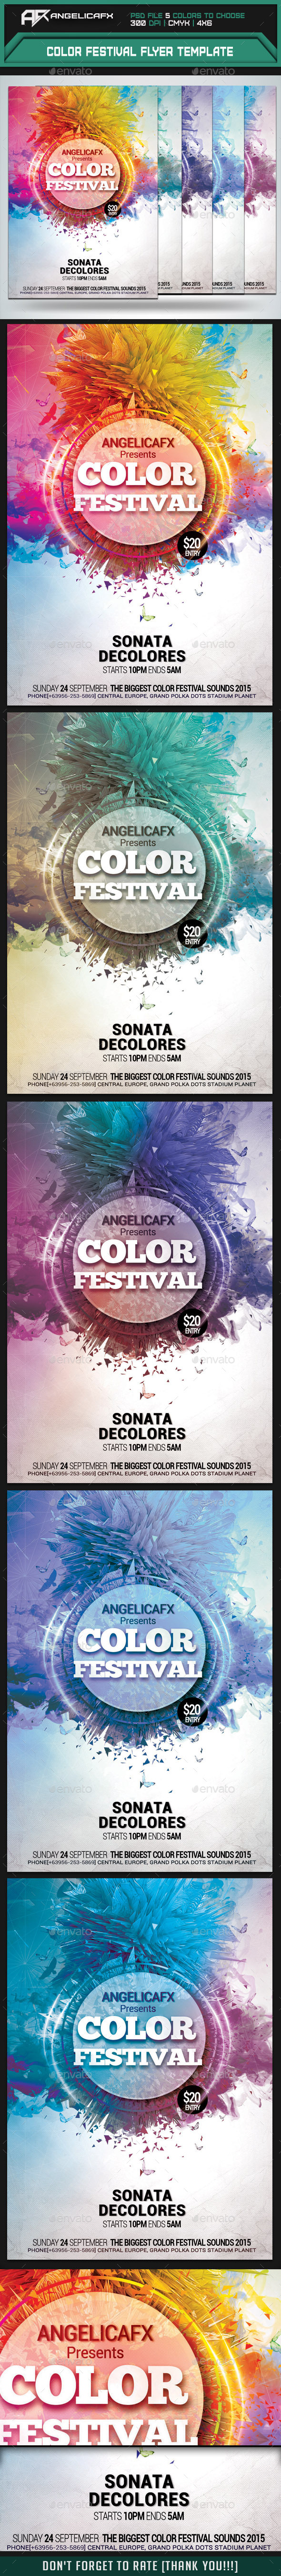 GraphicRiver Color Festival Flyer Template 10147963